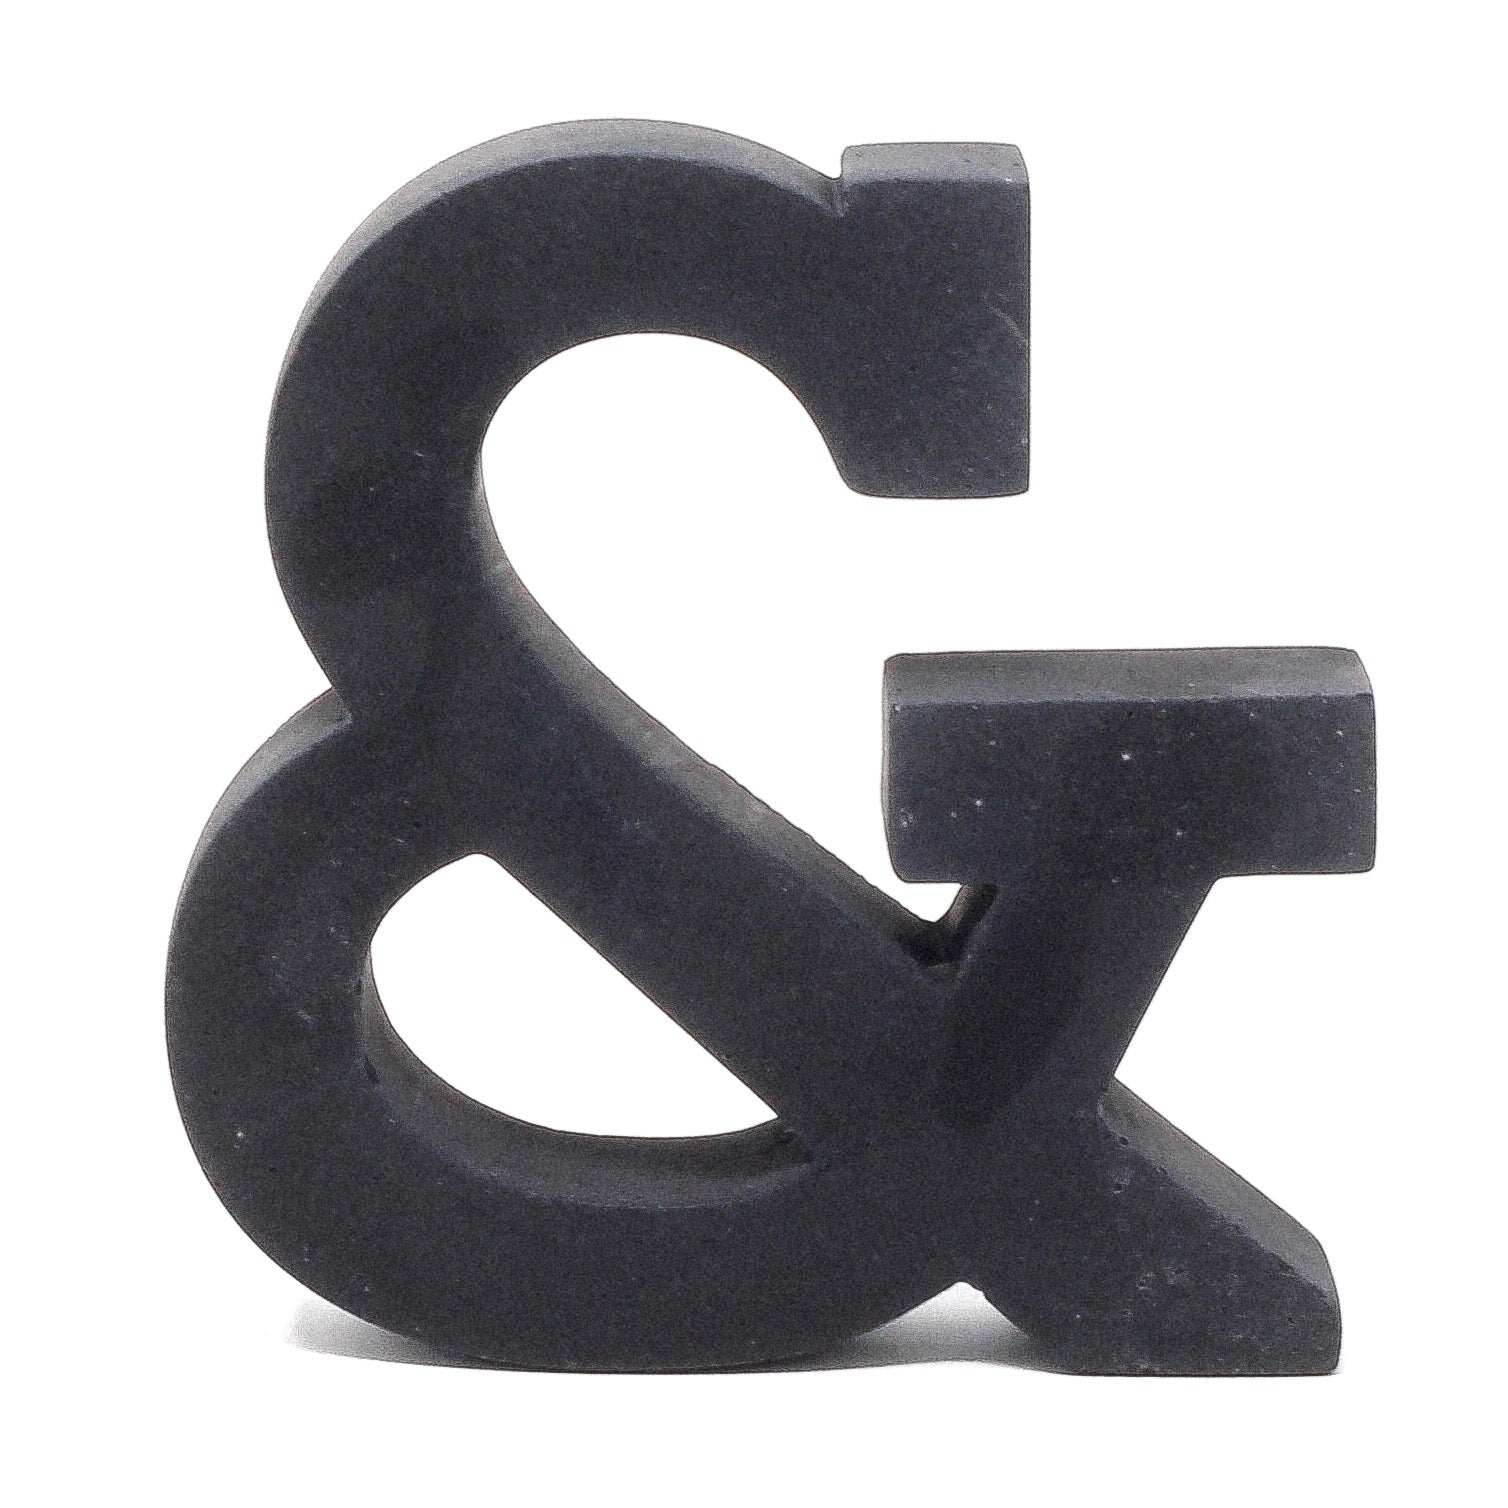 Concrete Ampersand: Carbon Black